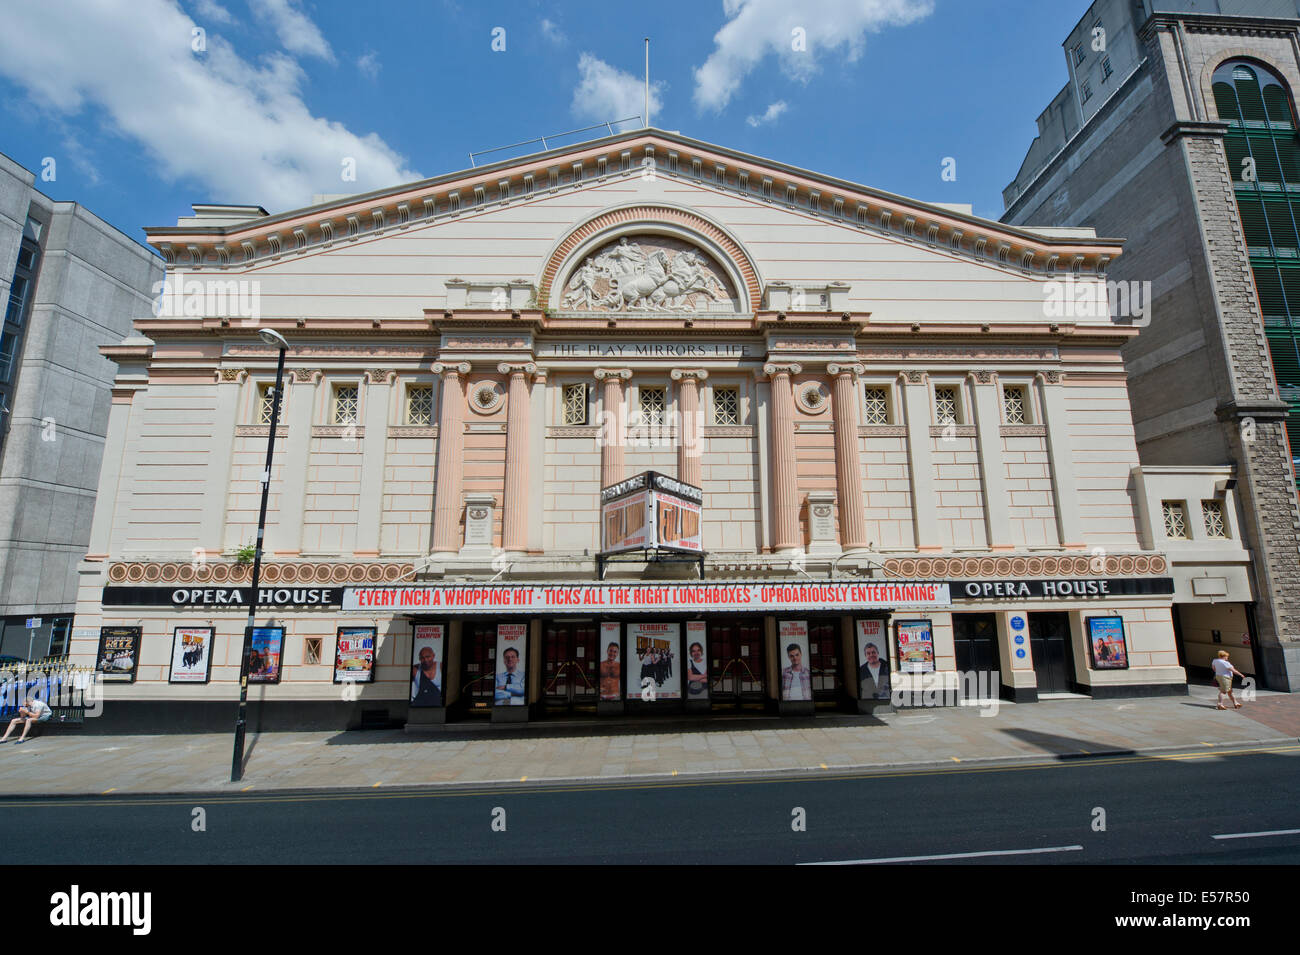 The Opera House theatre on Quay Street in Manchester, taken on a bright sunny day in summer. - Stock Image